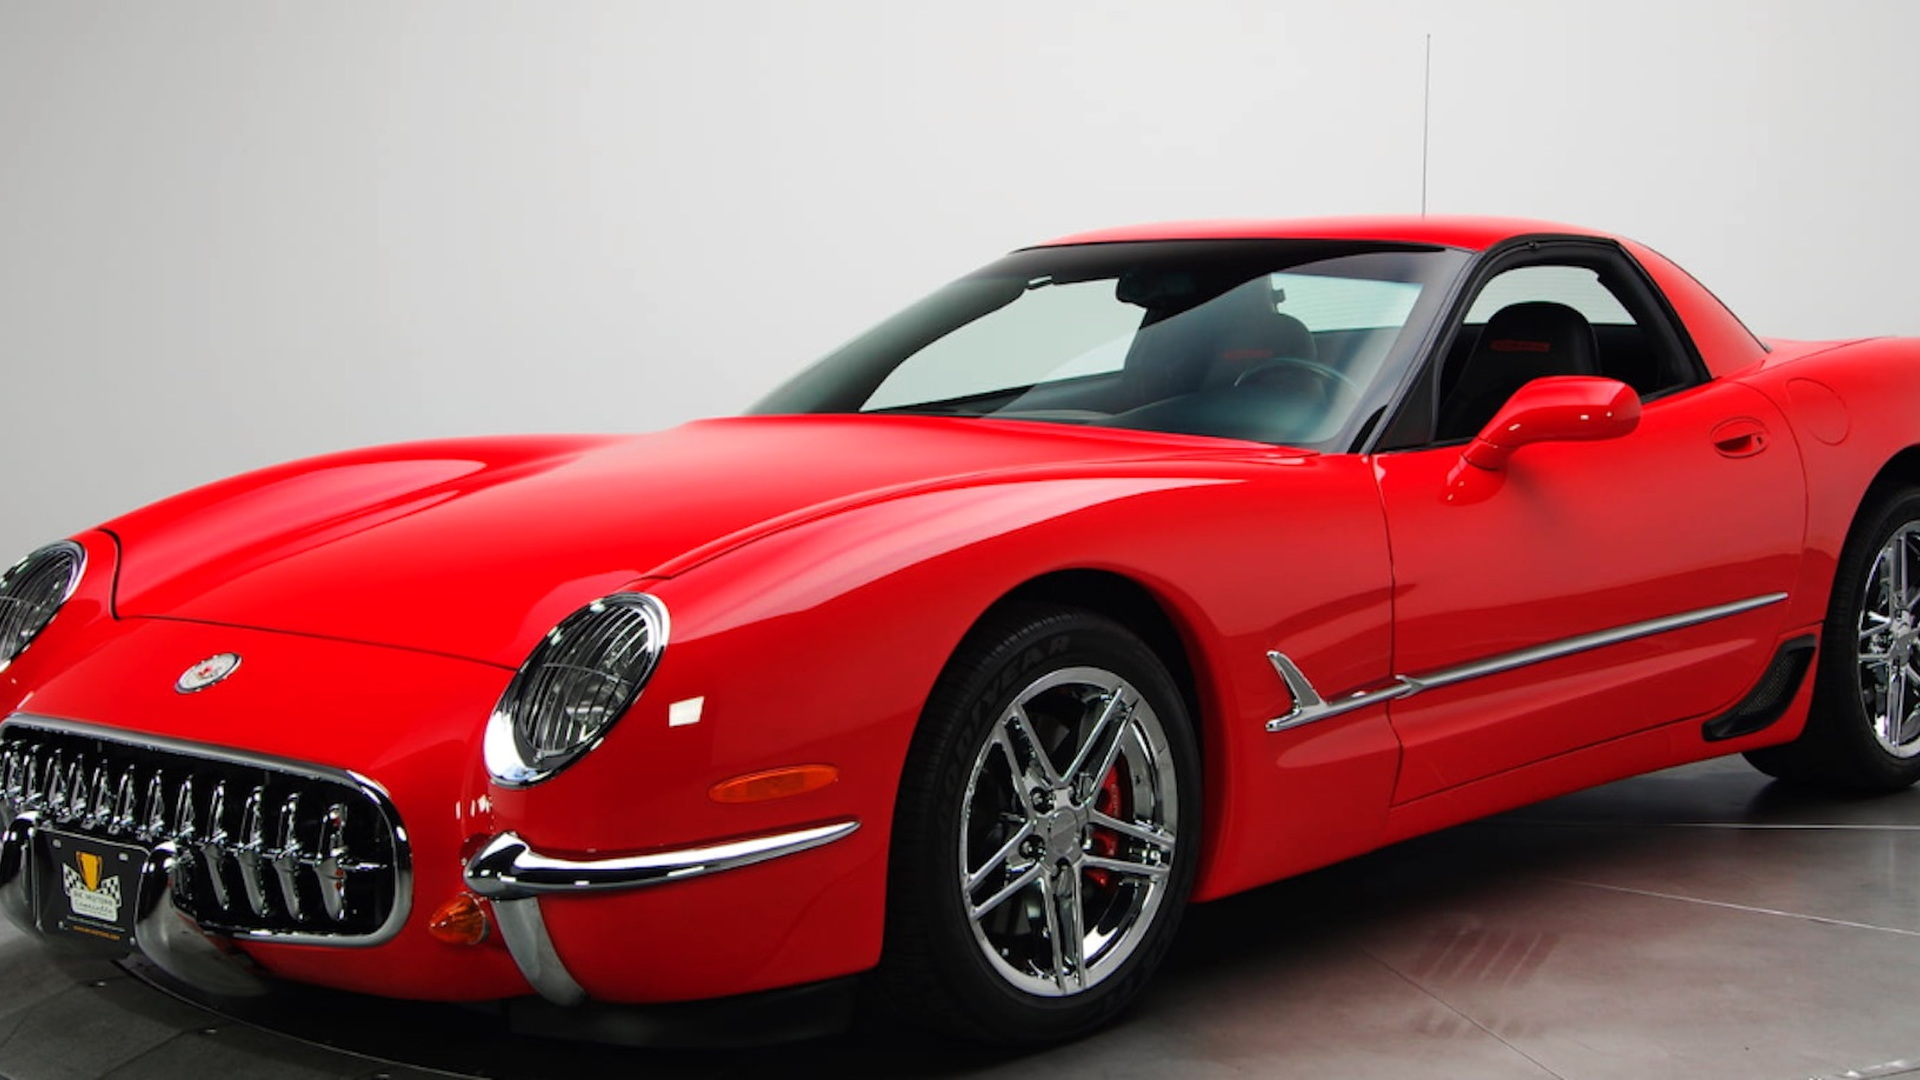 2001 Chevrolet Corvette retro rebody by AAT